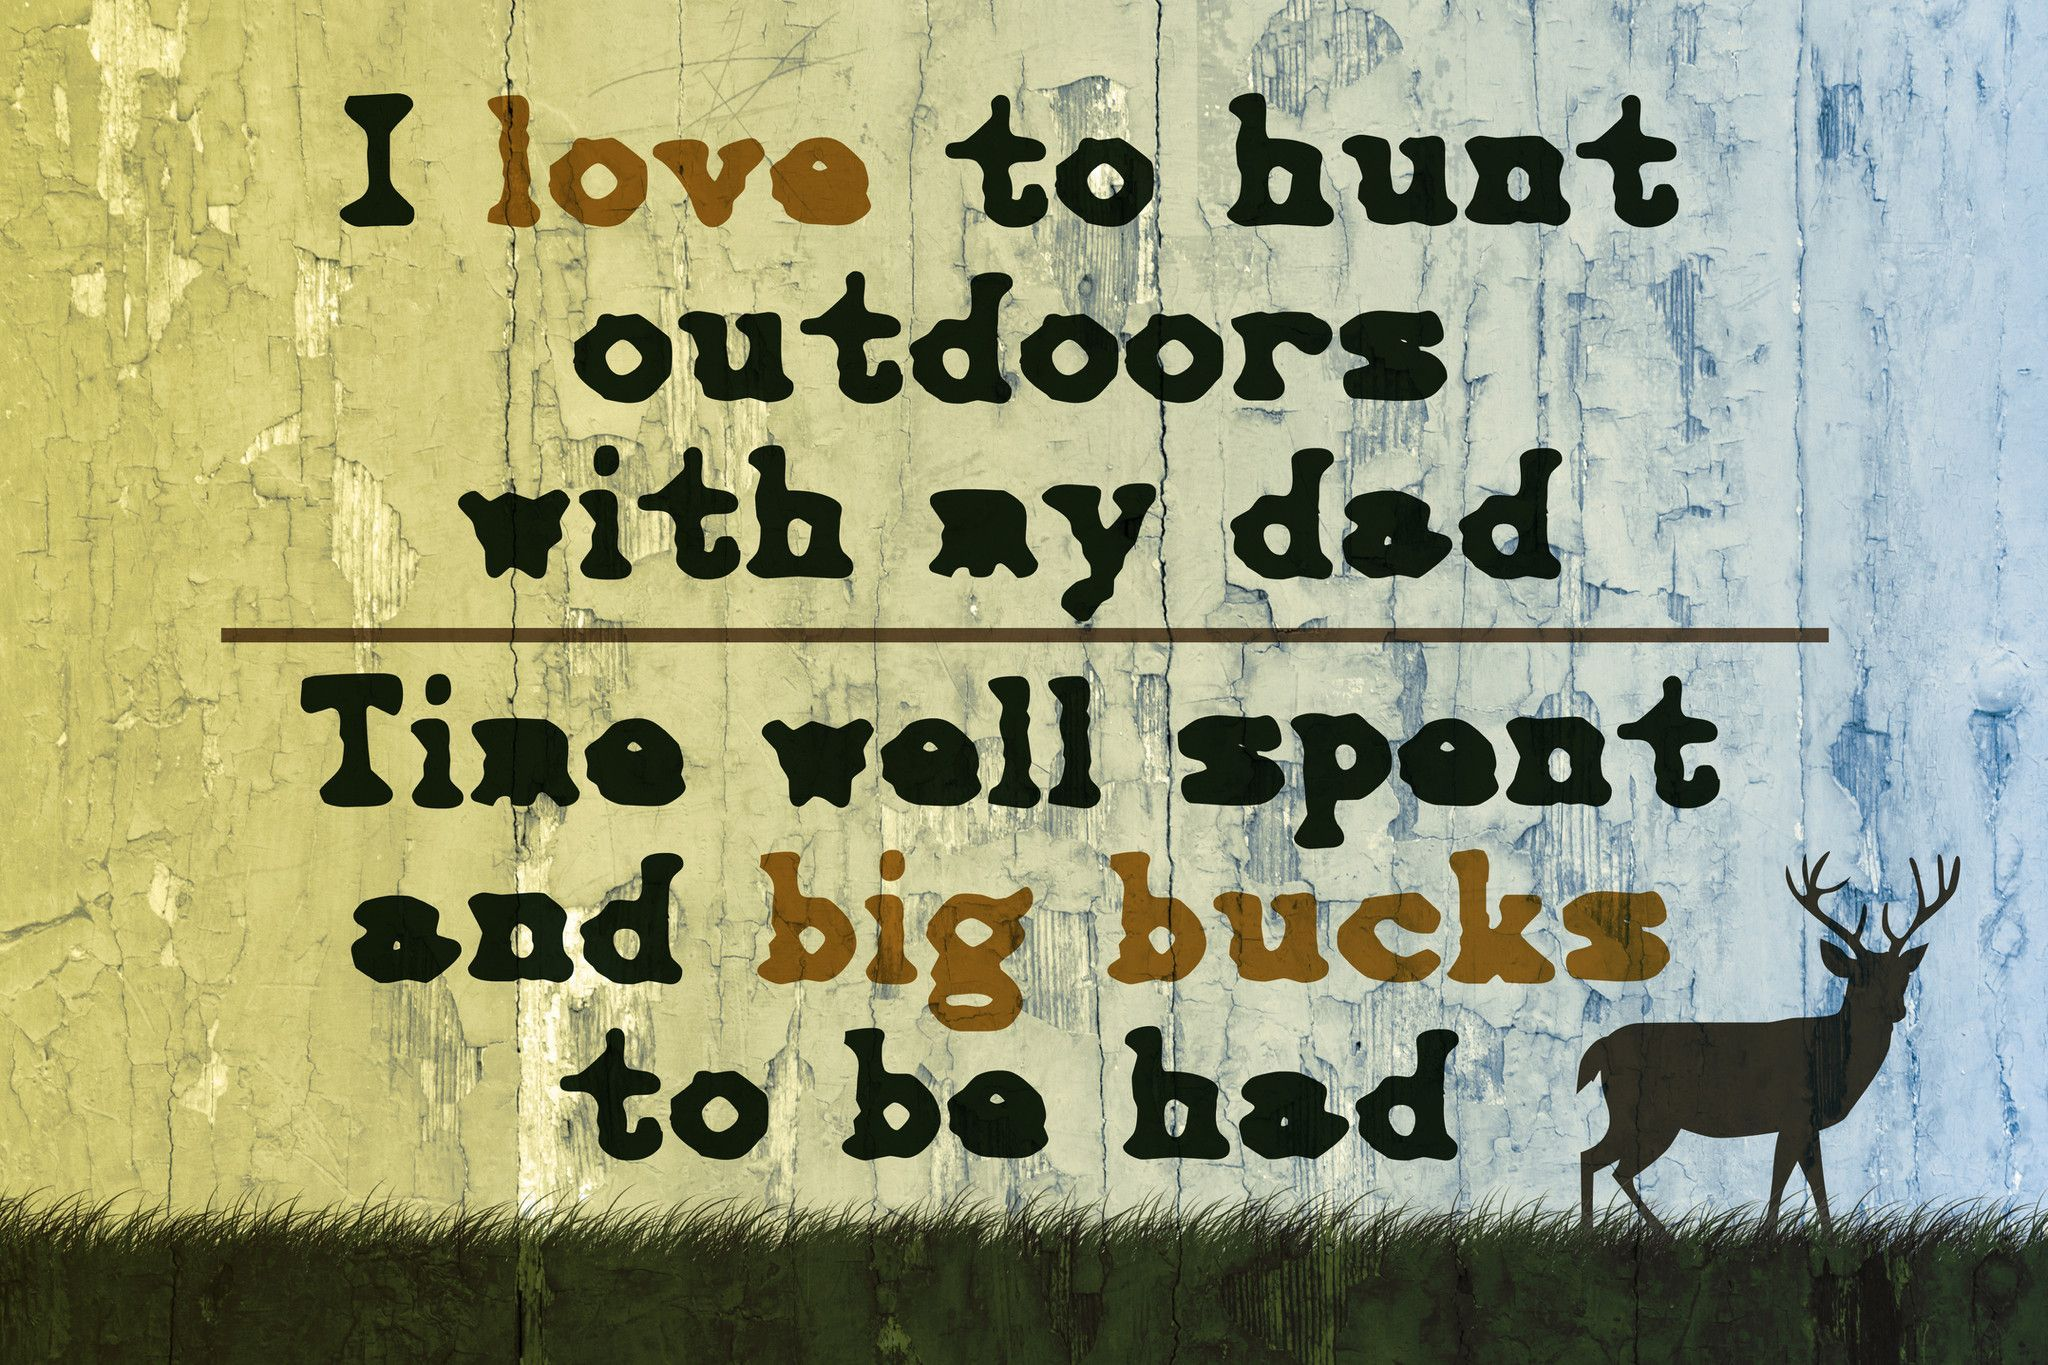 I Love To Hunt Outdoors With My Dad..\